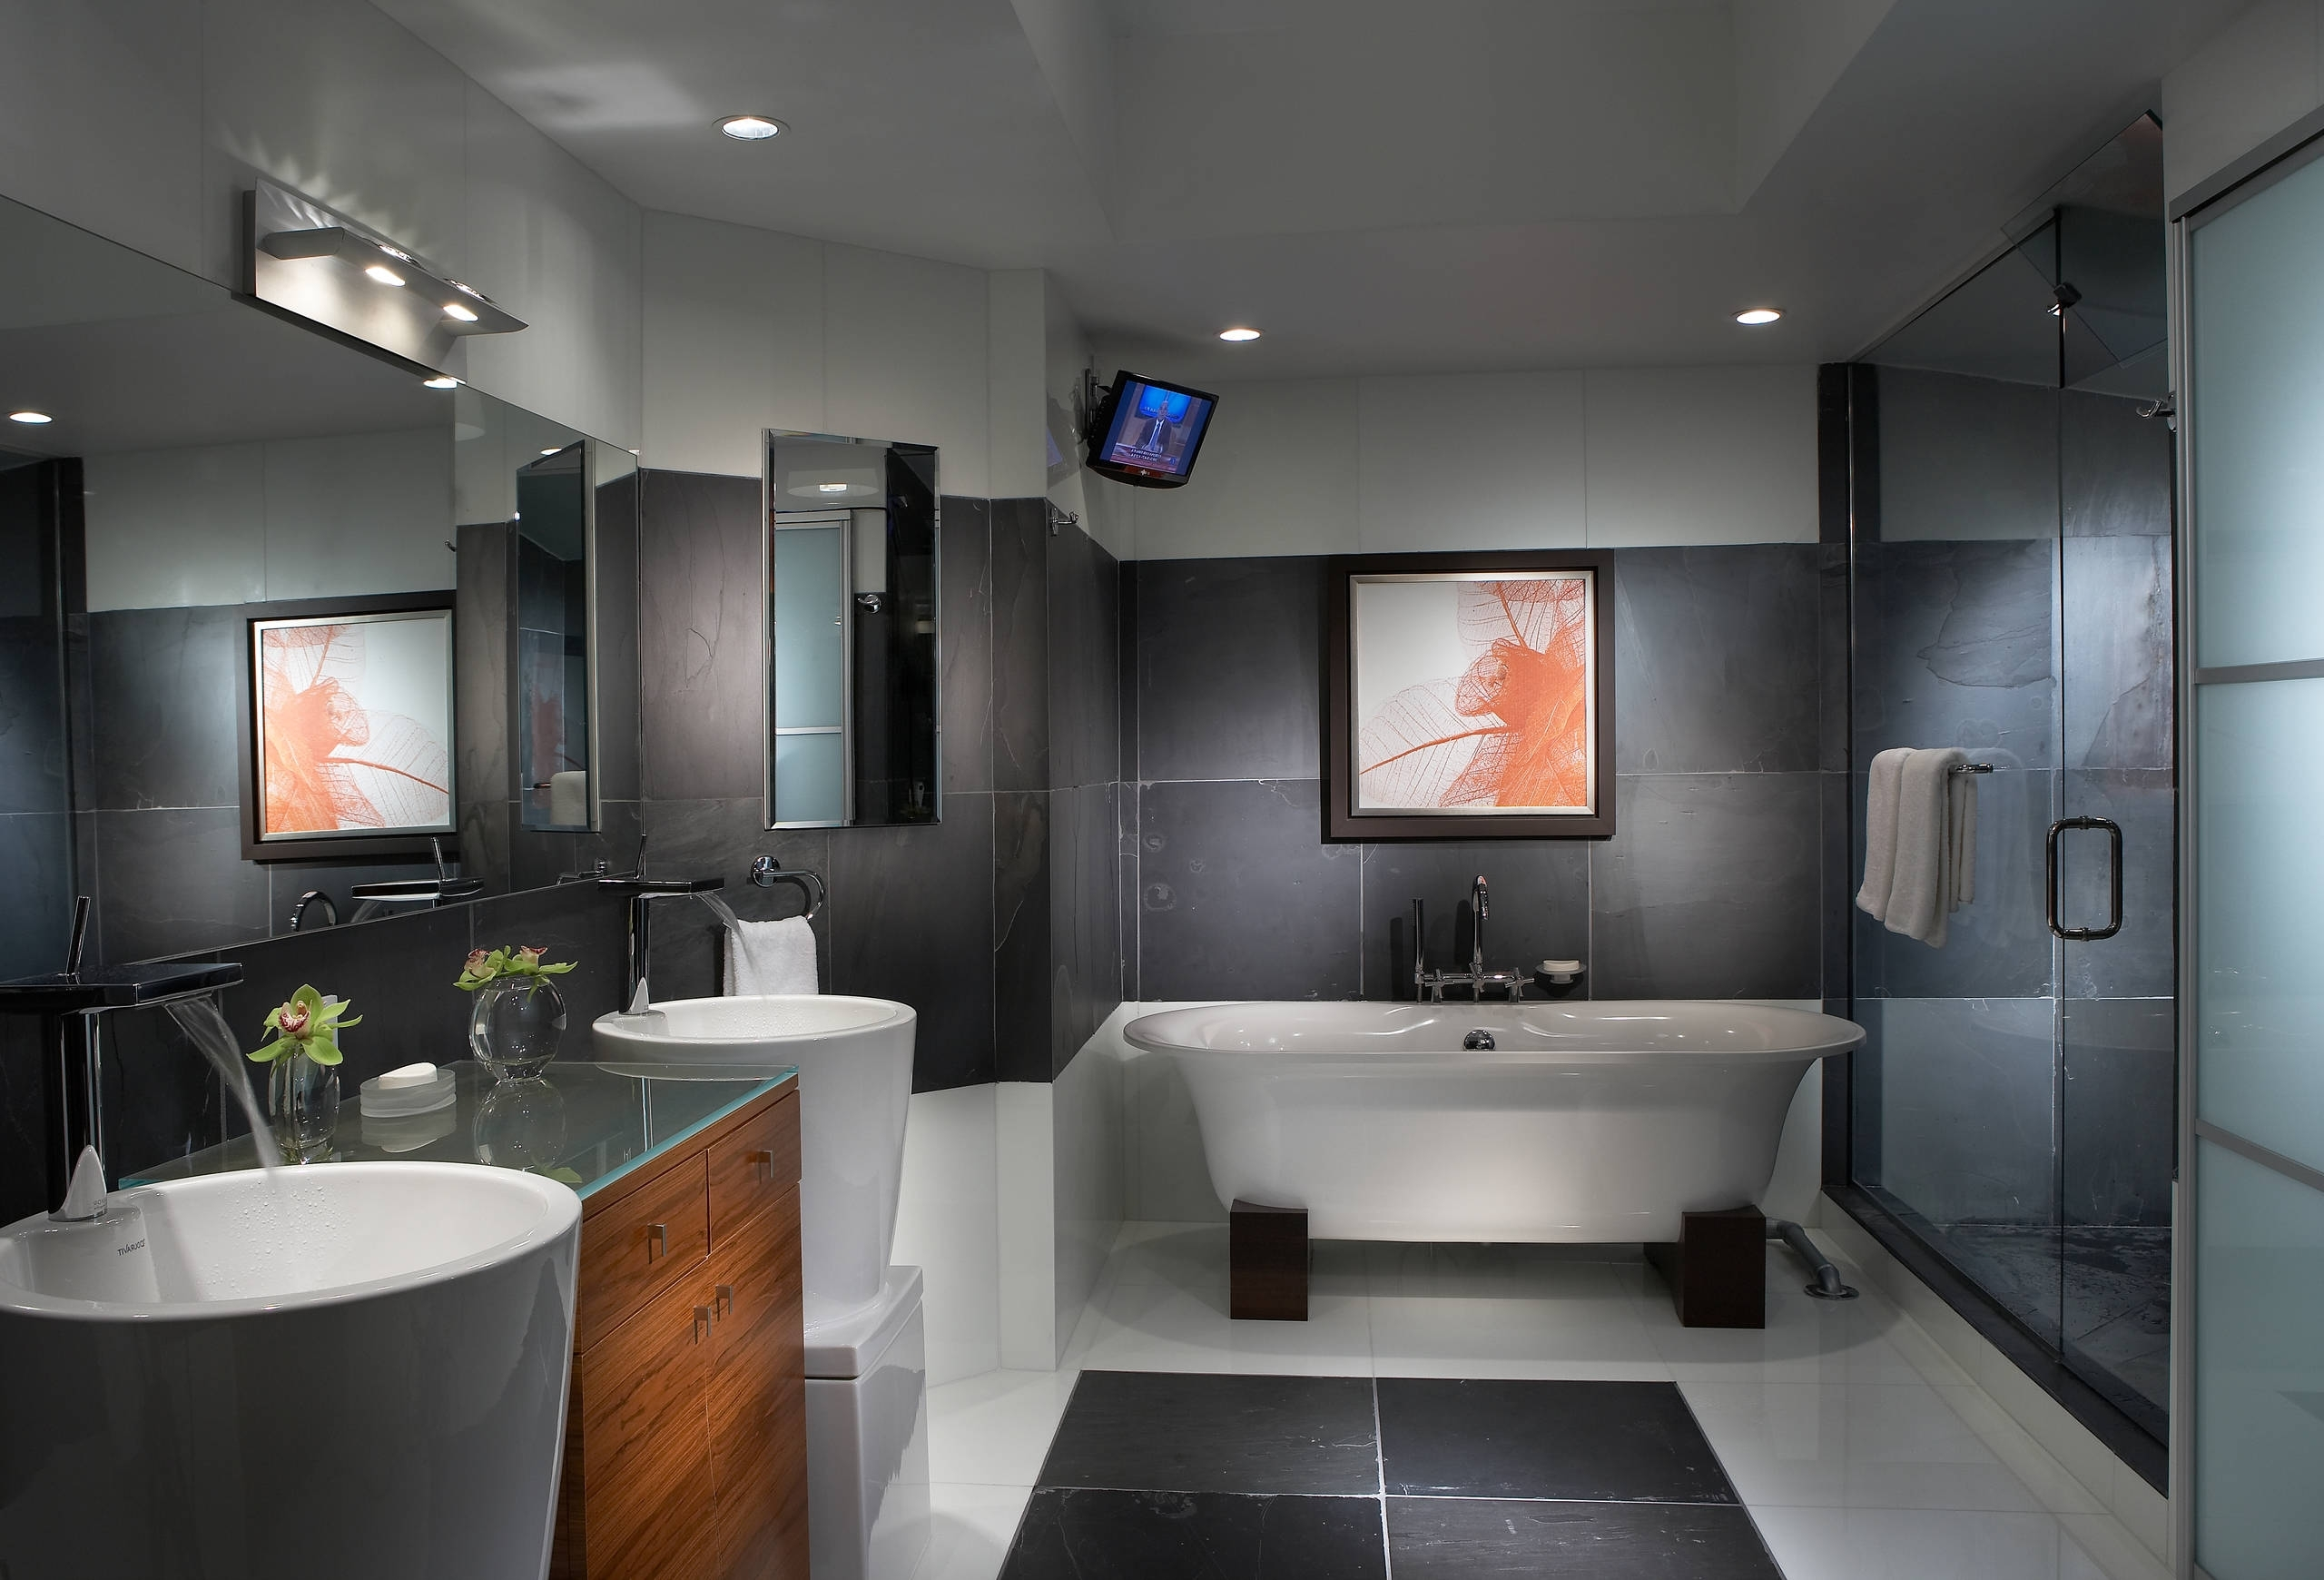 Interior Designing In Kerala Bathroom Ideas & Photos | Houzz 30+ Kerala House Bathroom Designs Ideas